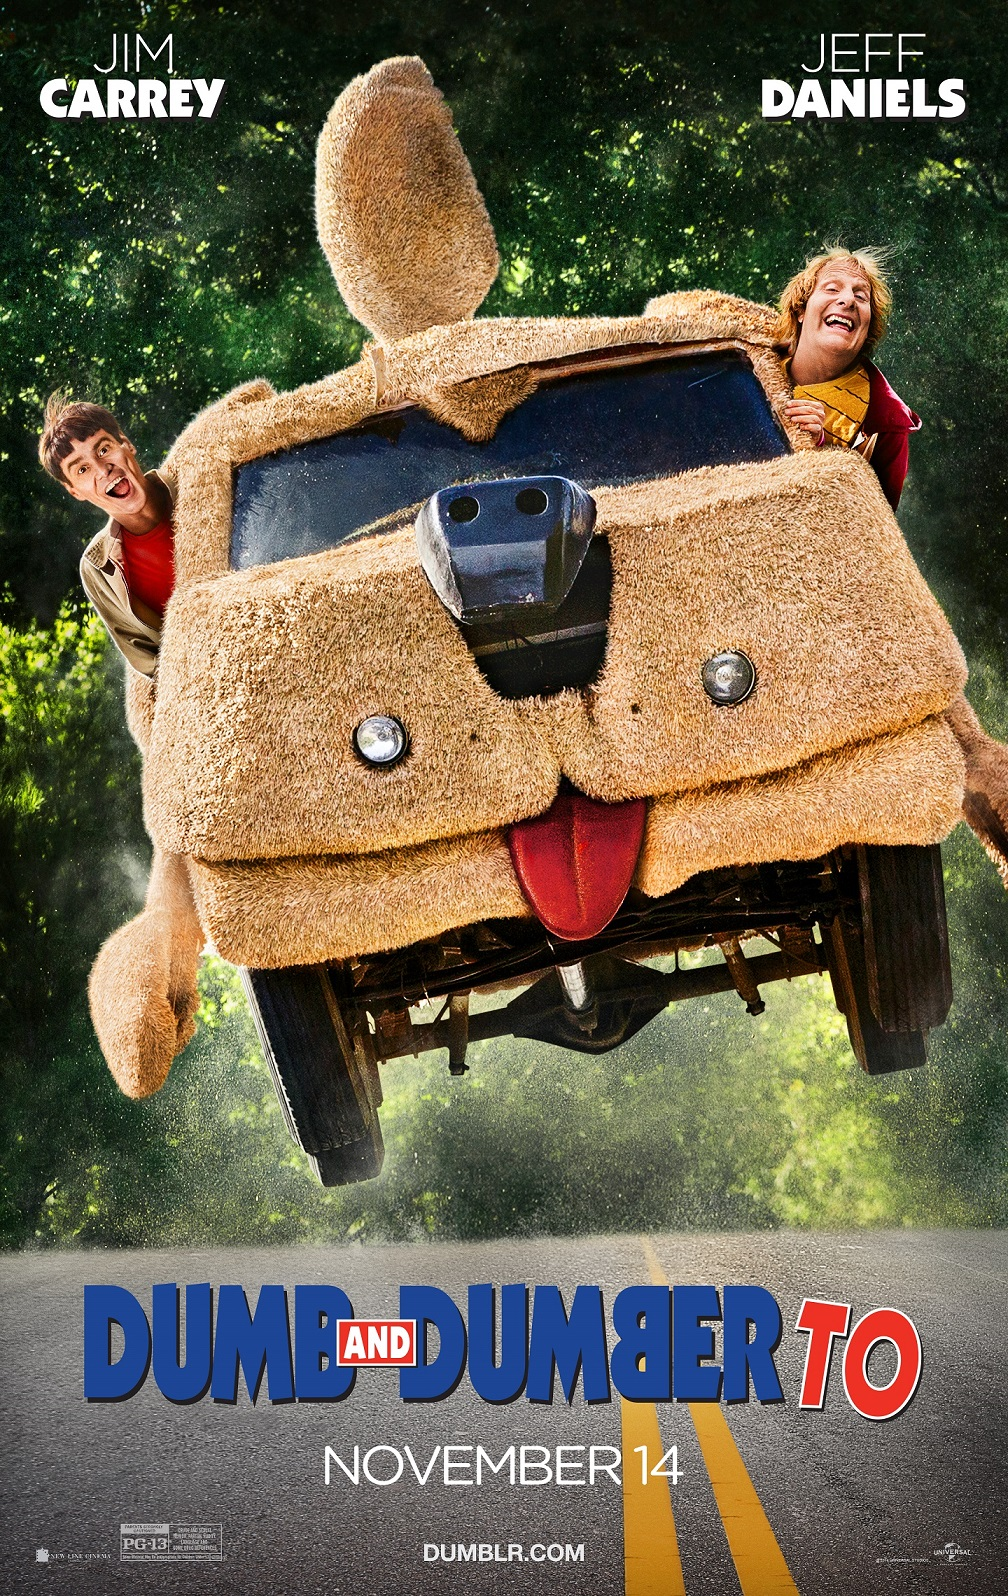 Dumb and Dumber To Poster Dumb and Dumber To Trailer and Poster and Hilarious Photos Released